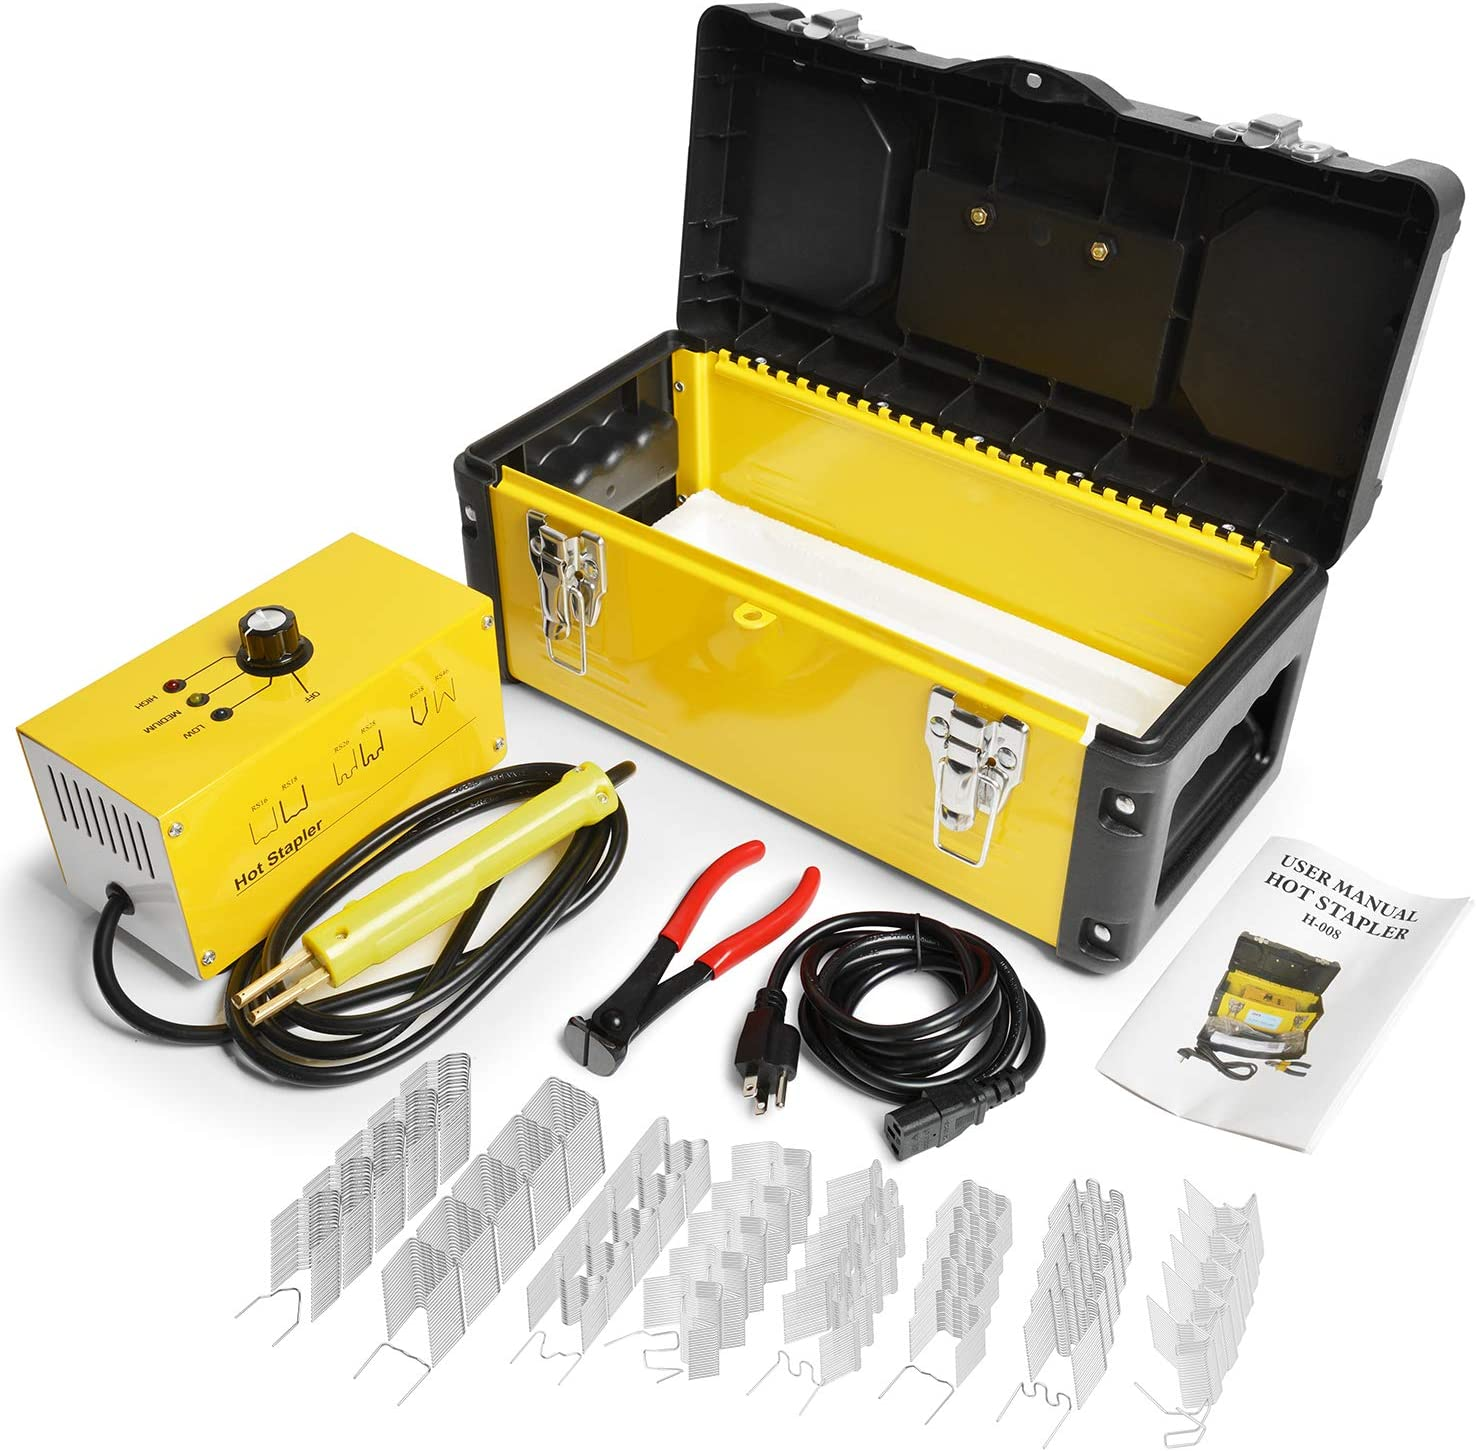 Details about  /Hot Staples Welding Wire Staples Welder Stapler tool For Car Welder Stapler